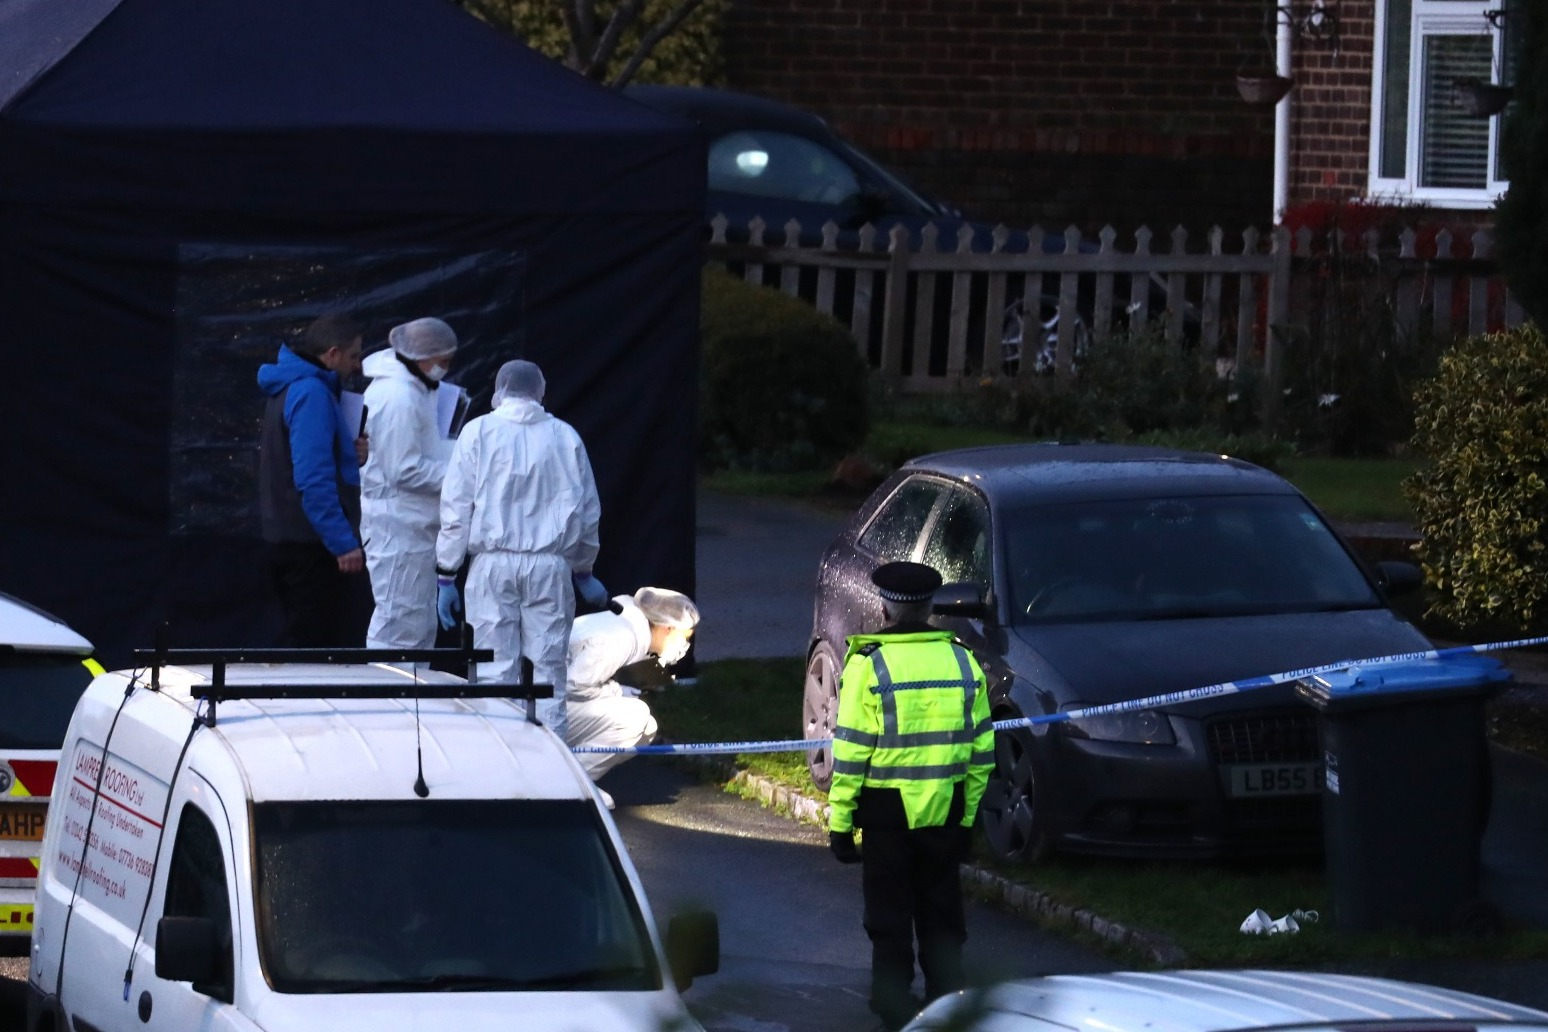 ARREST AFTER DOUBLE STABBING IN SUSSEX VILLAGE